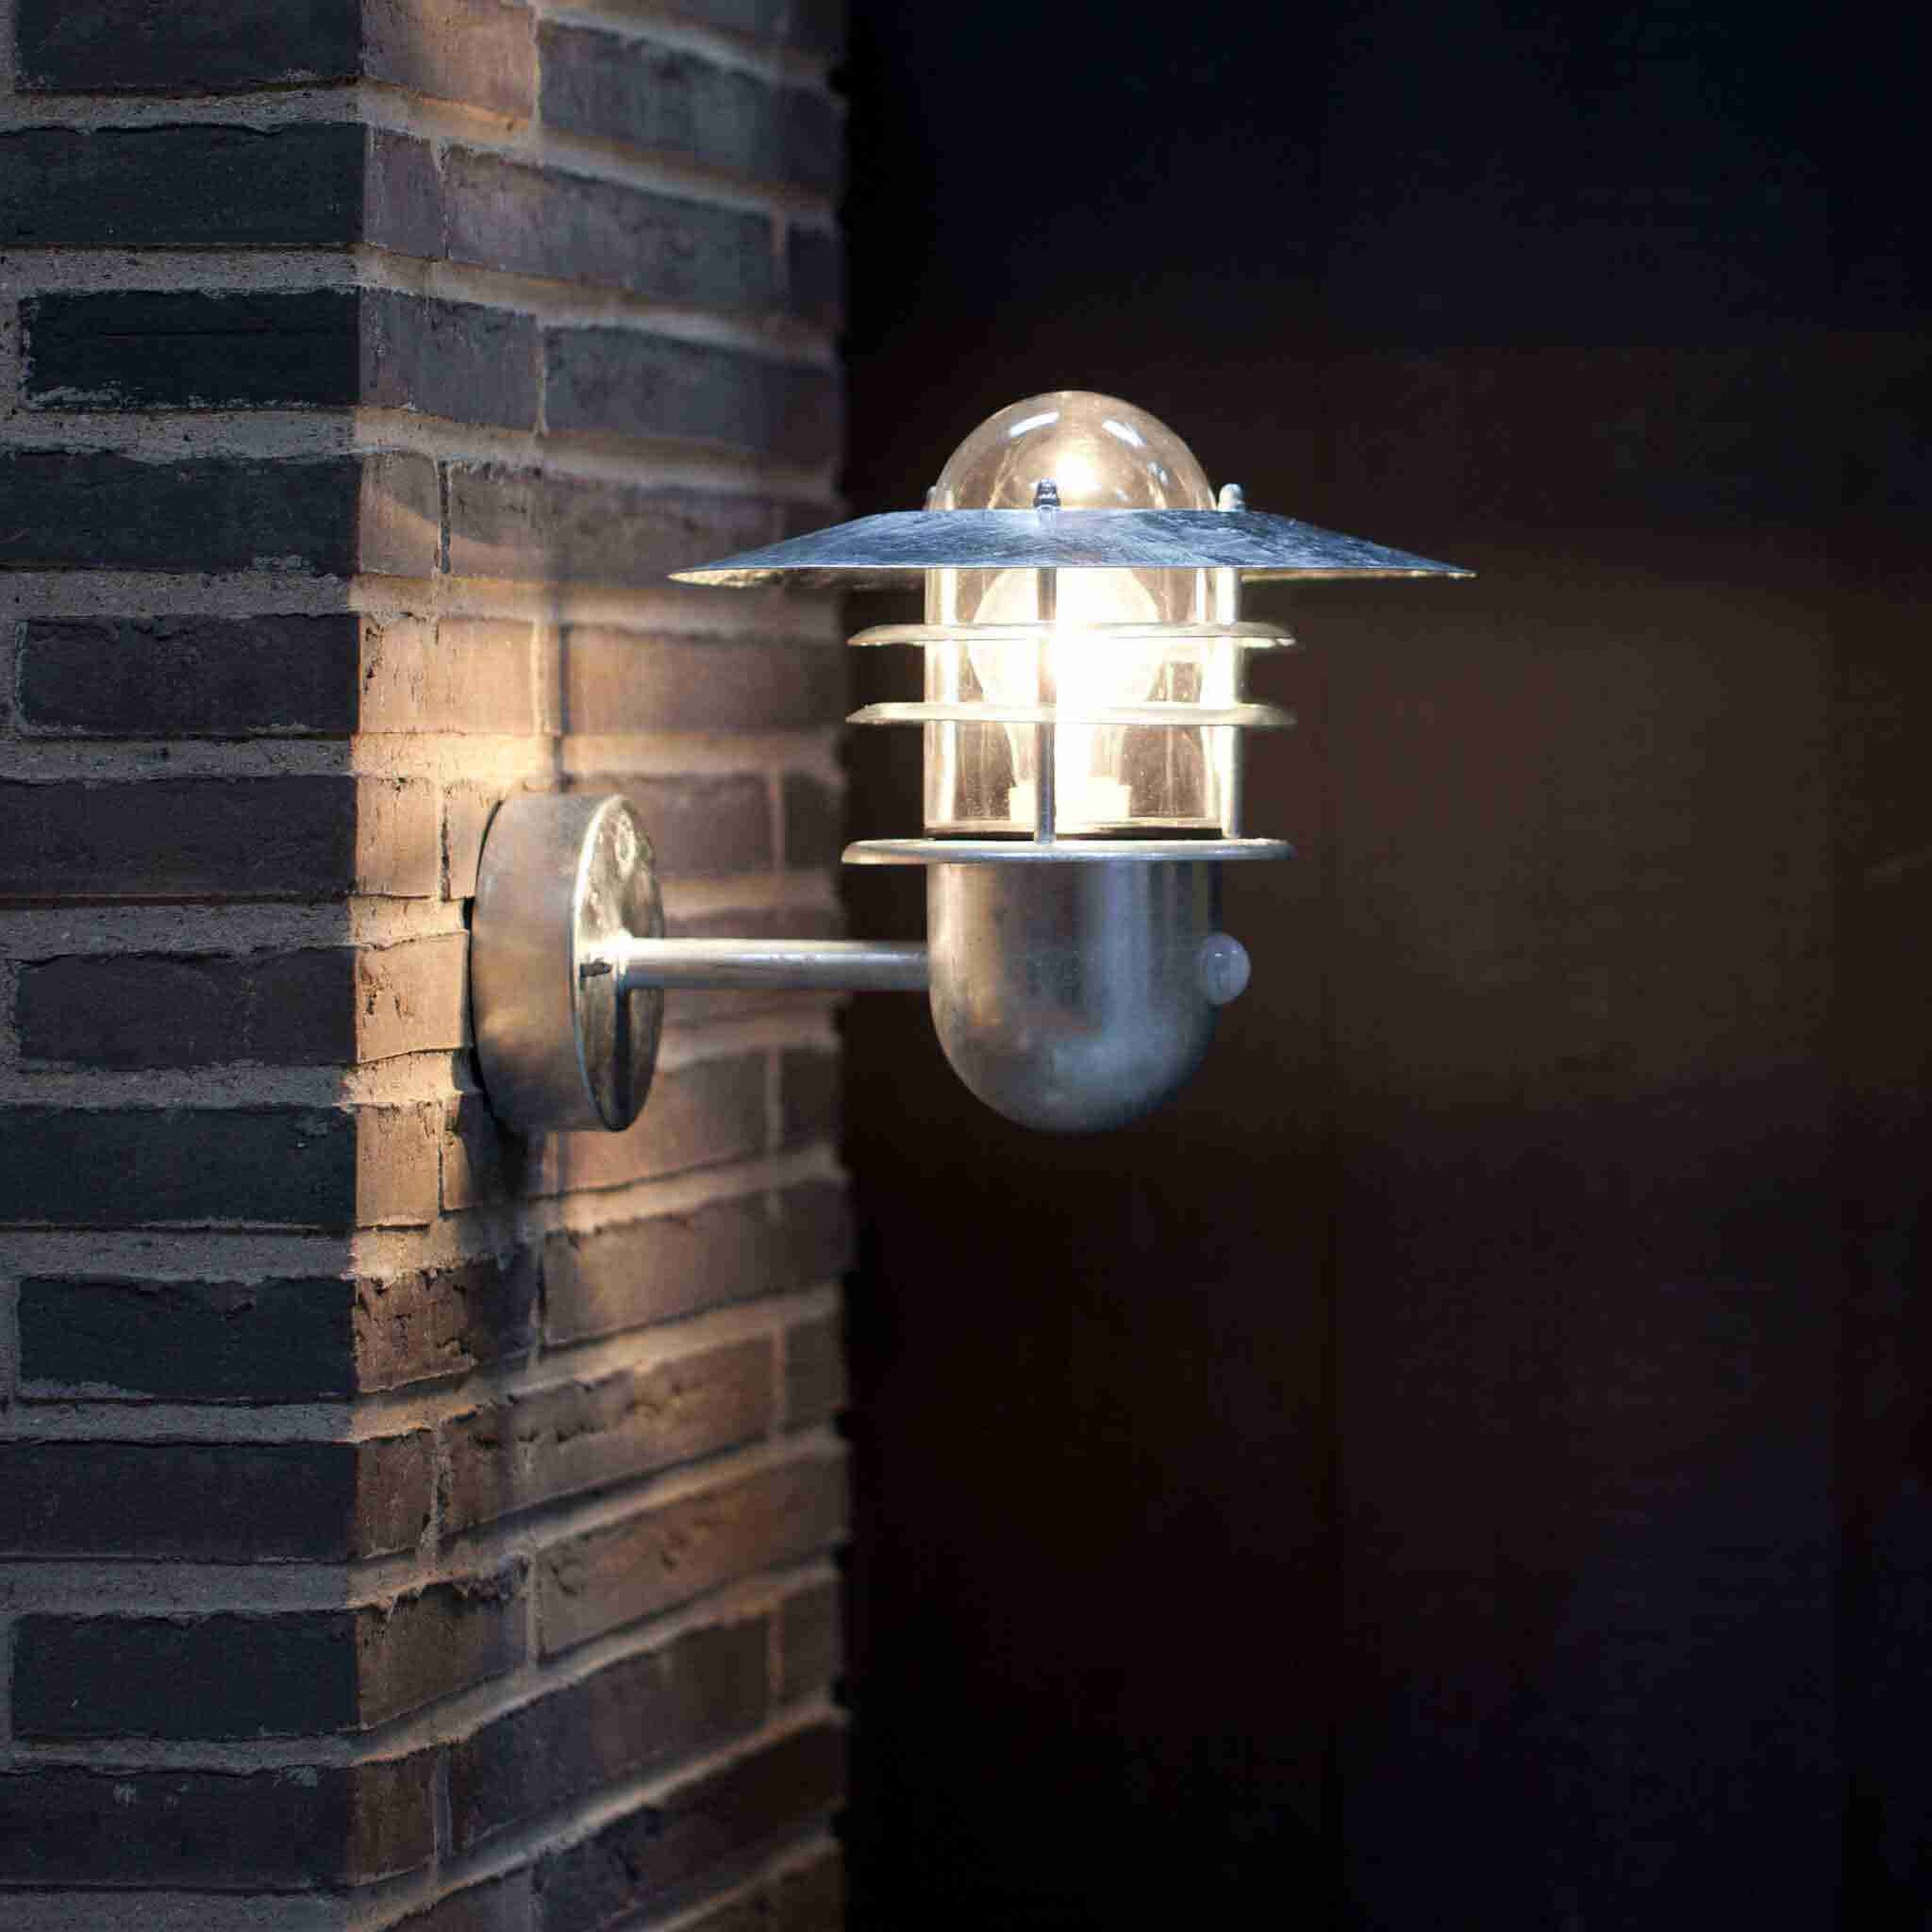 Nordlux agger galvanised steel outdoor pir motion sensor wall light outdoor sensor wall light agger collection aloadofball Images